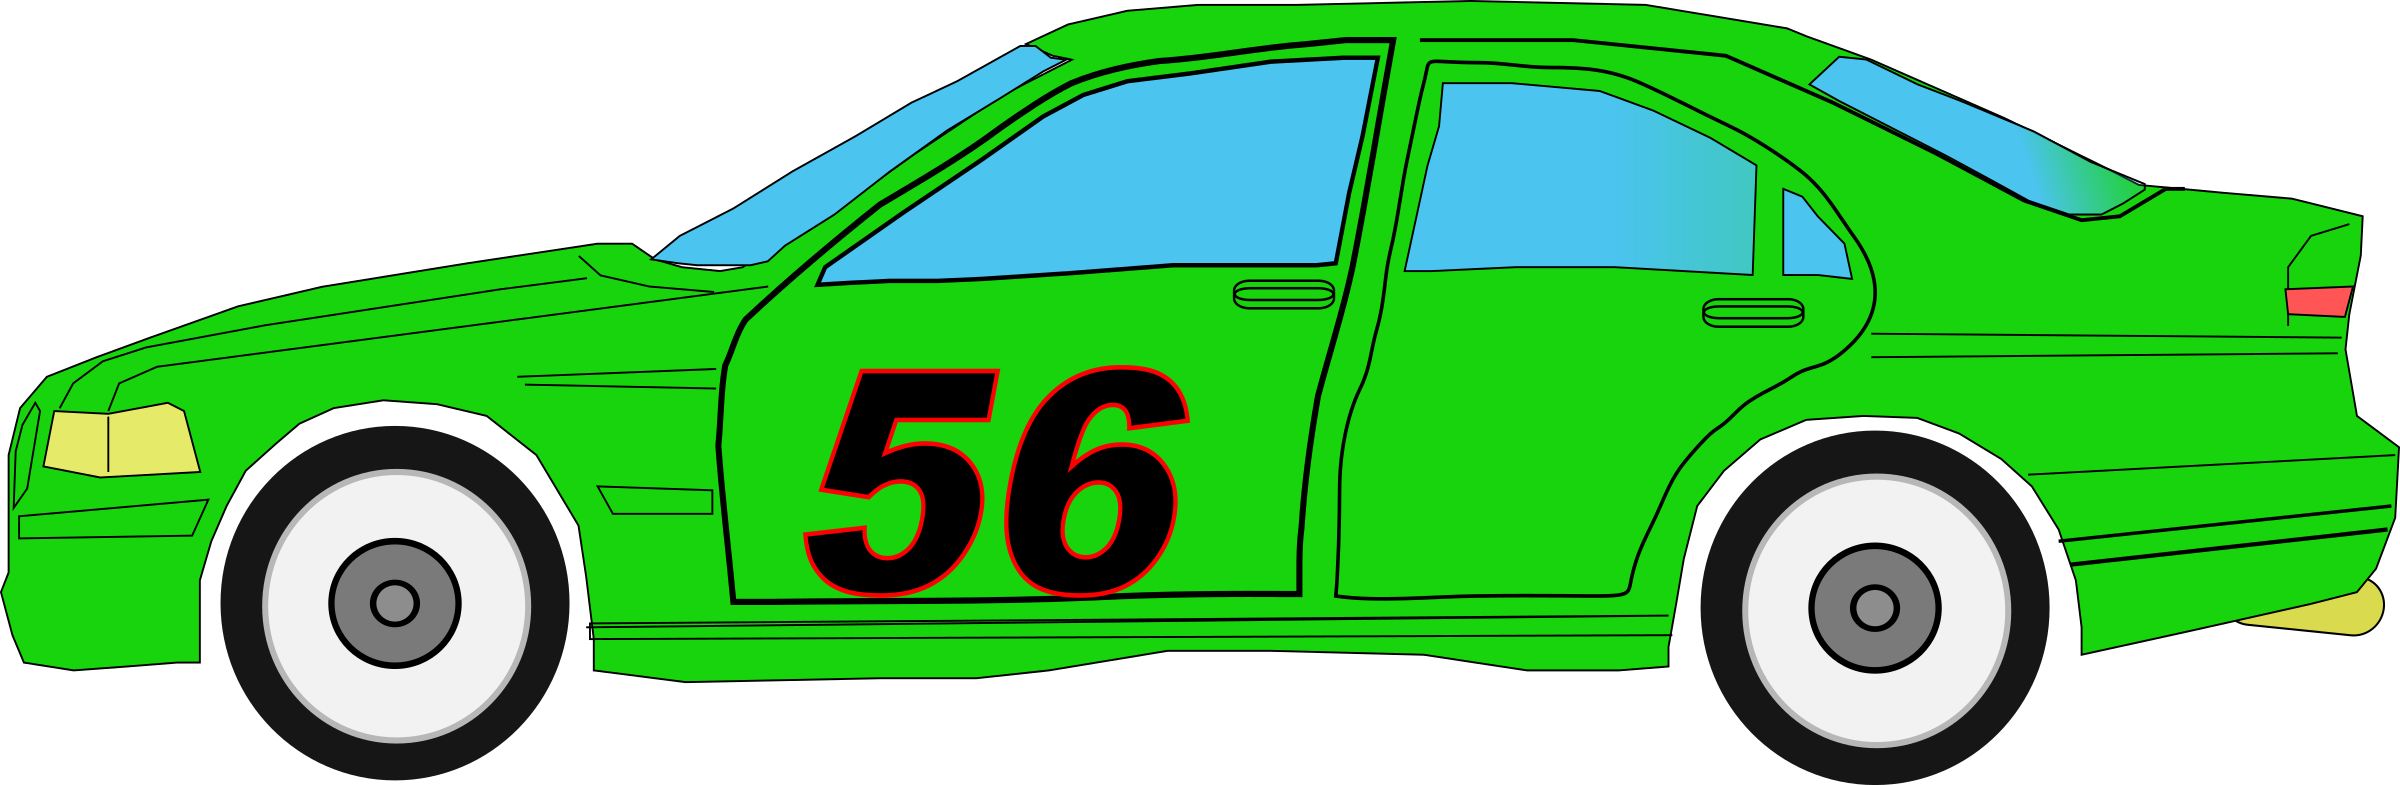 2400x785 Collection Of Green Race Car Clipart High Quality, Free